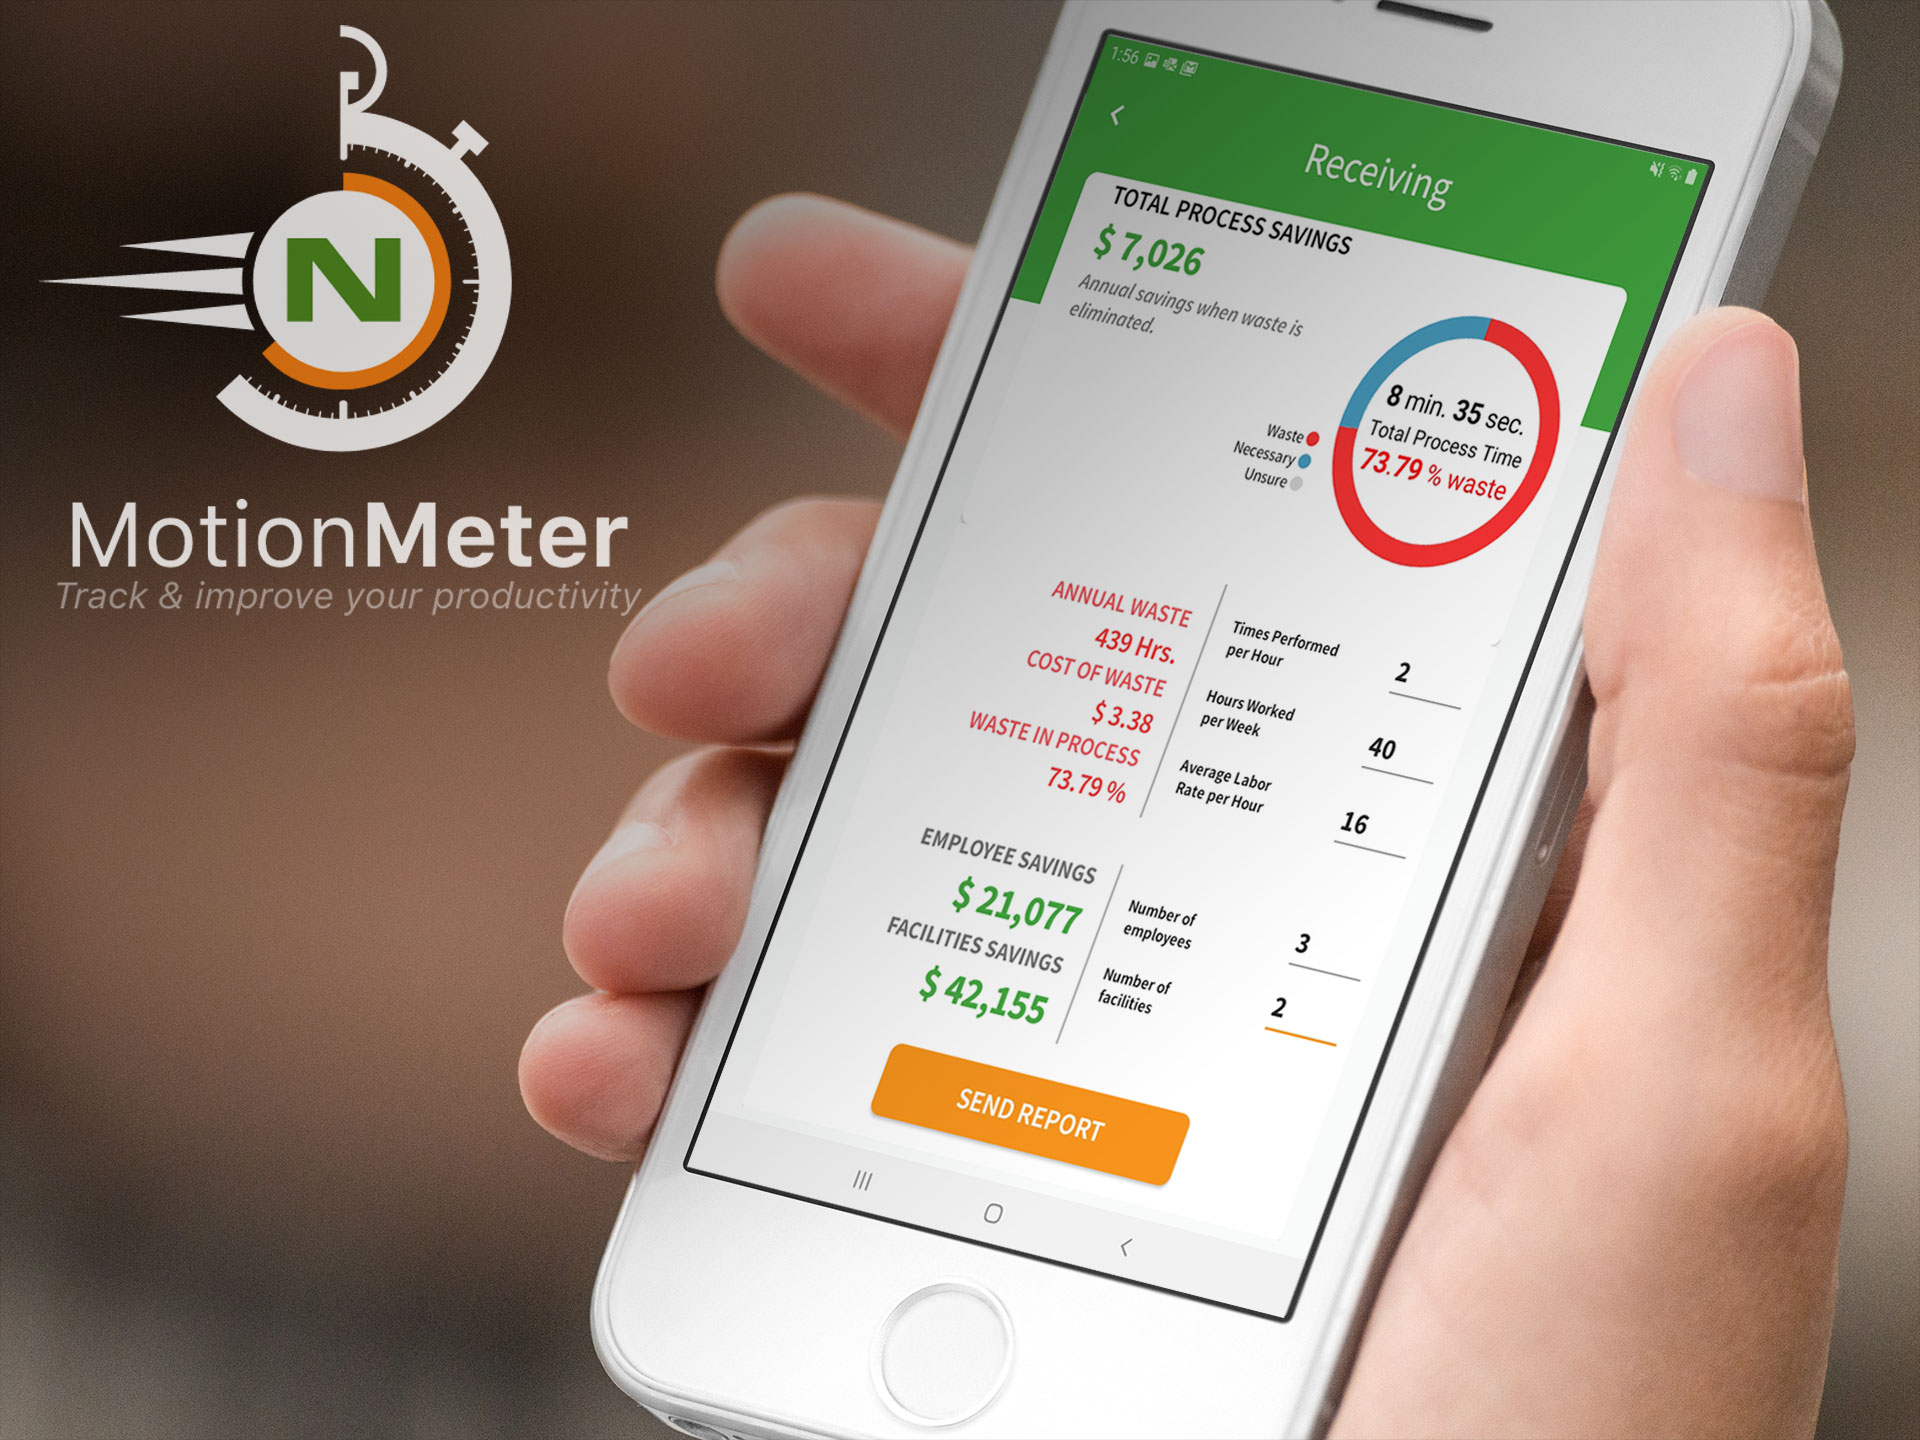 MotionMeter-Overview-Logo-iPhone.jpg